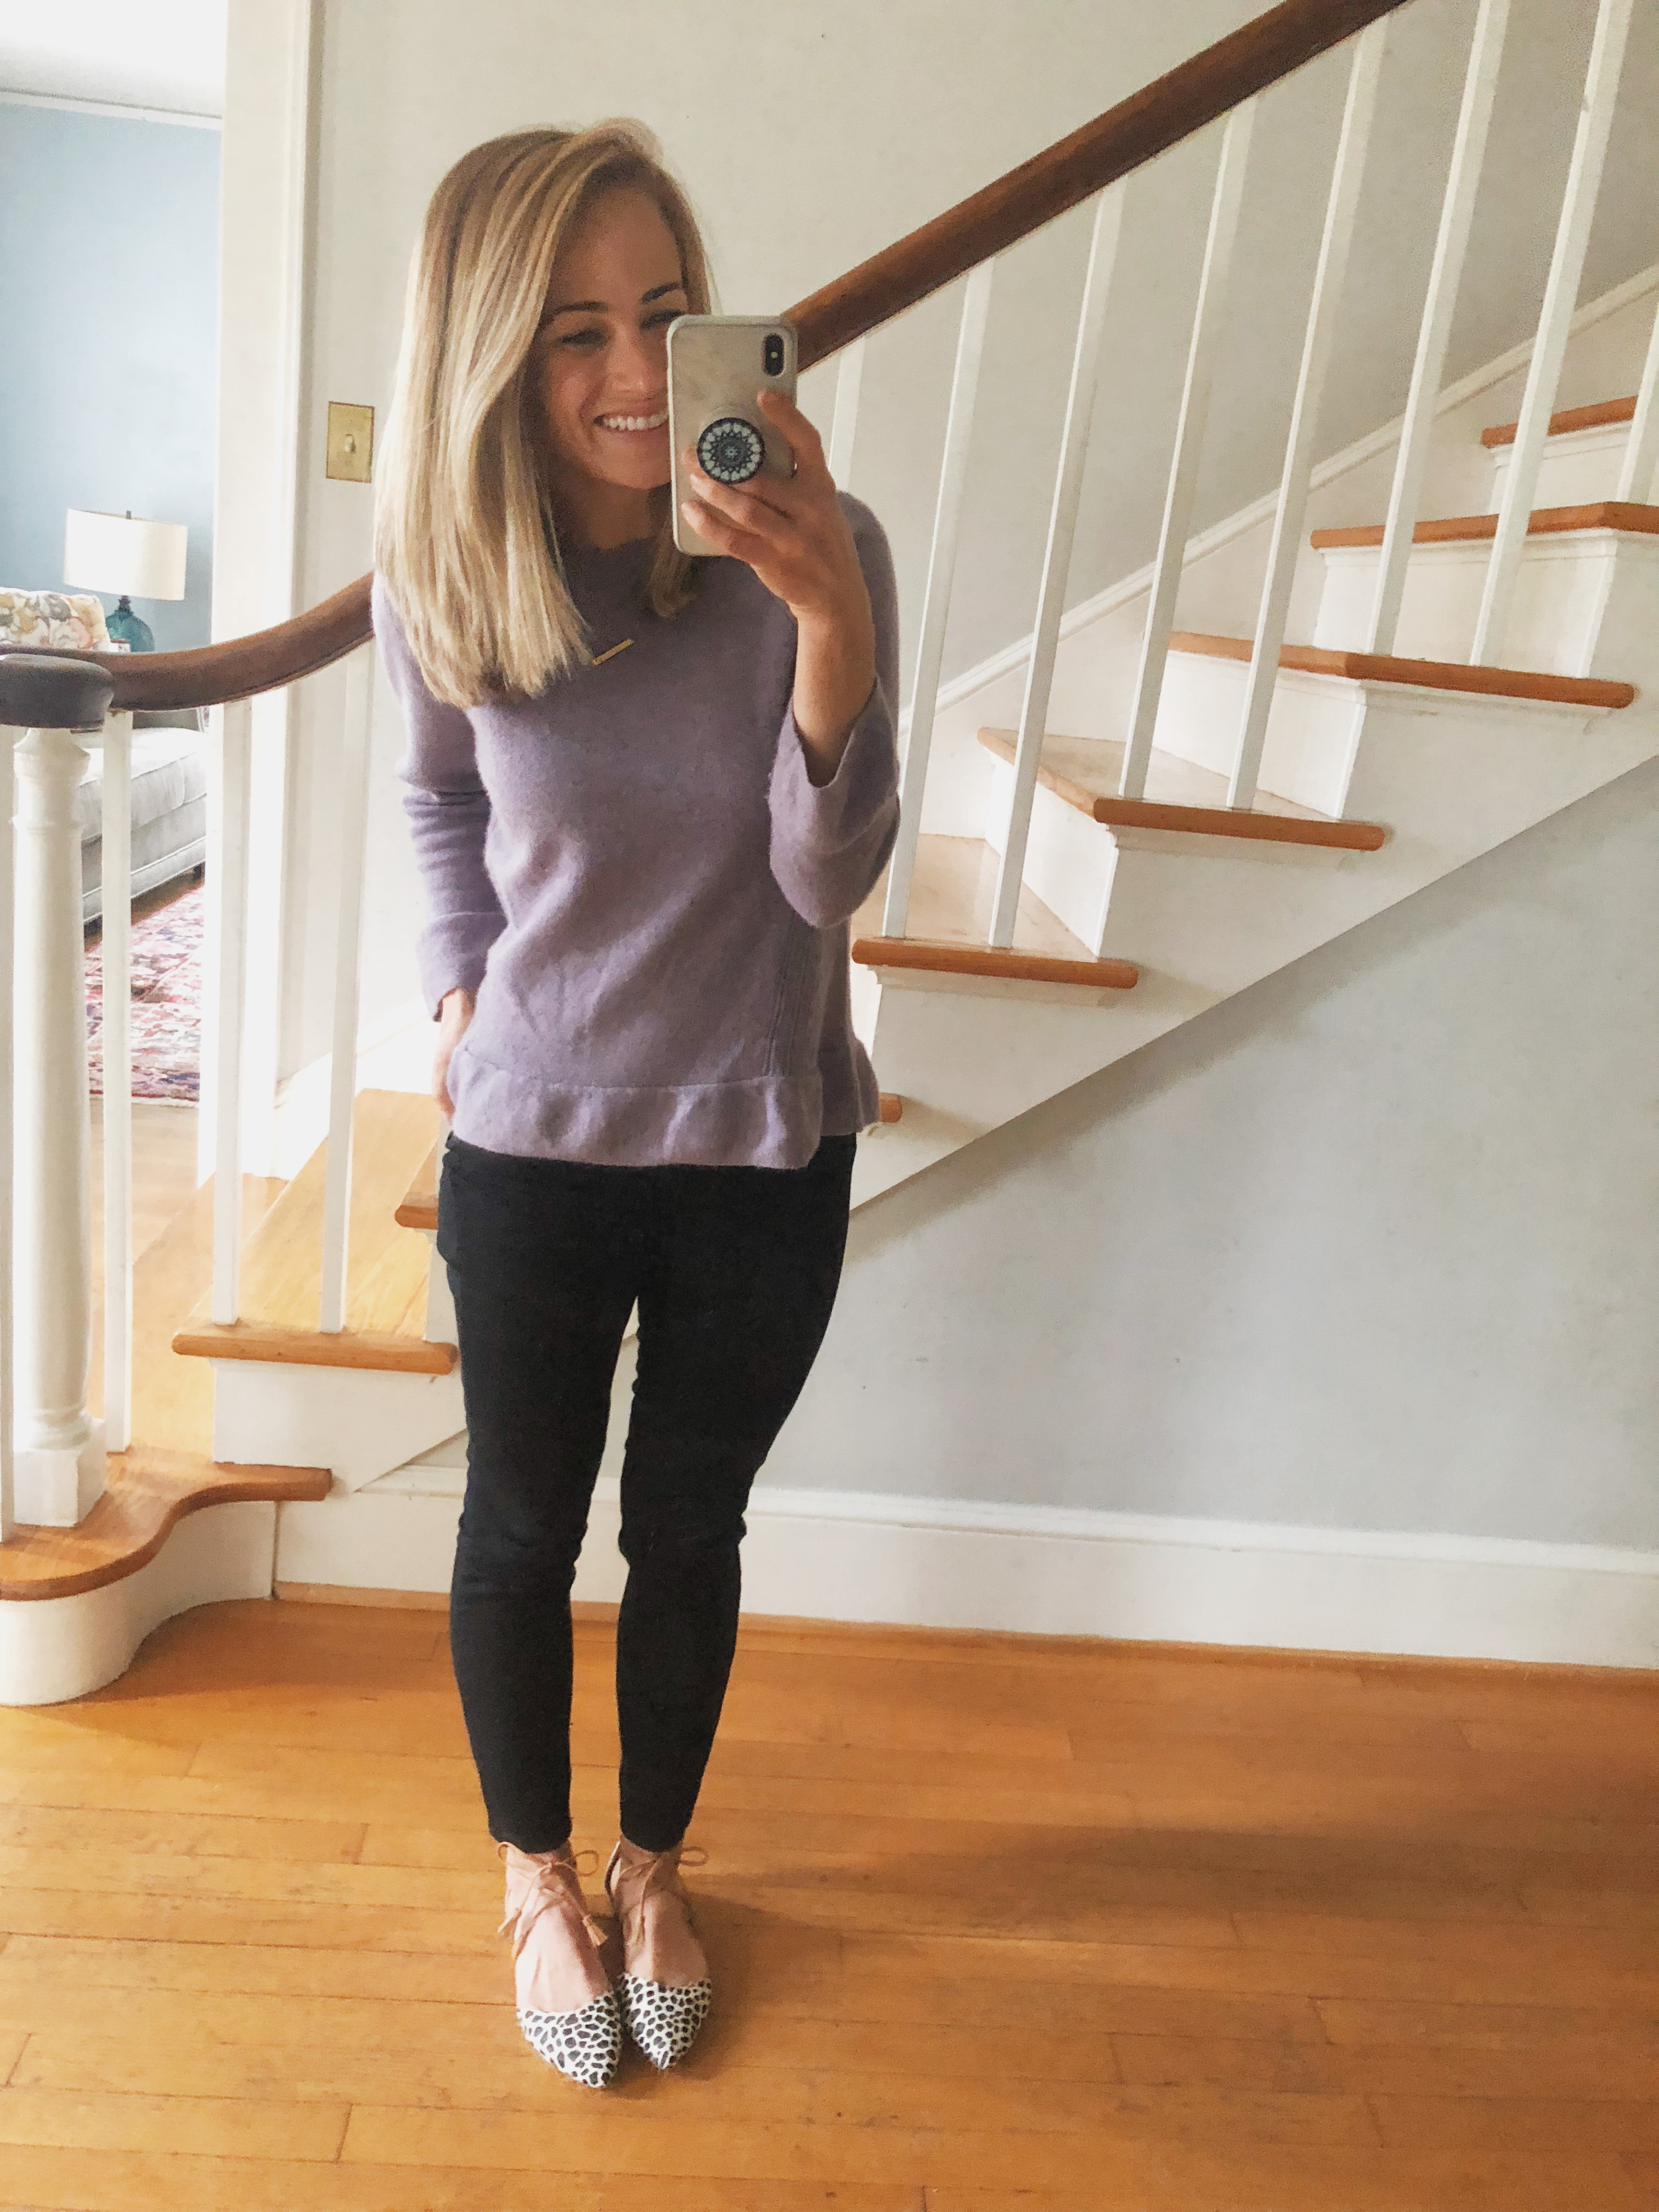 7b068dff I got the sweater from DailyLook, a styling service I LOVE – they've been  so helpful sending me items that work for me. Petite style can be hard to  nail but ...